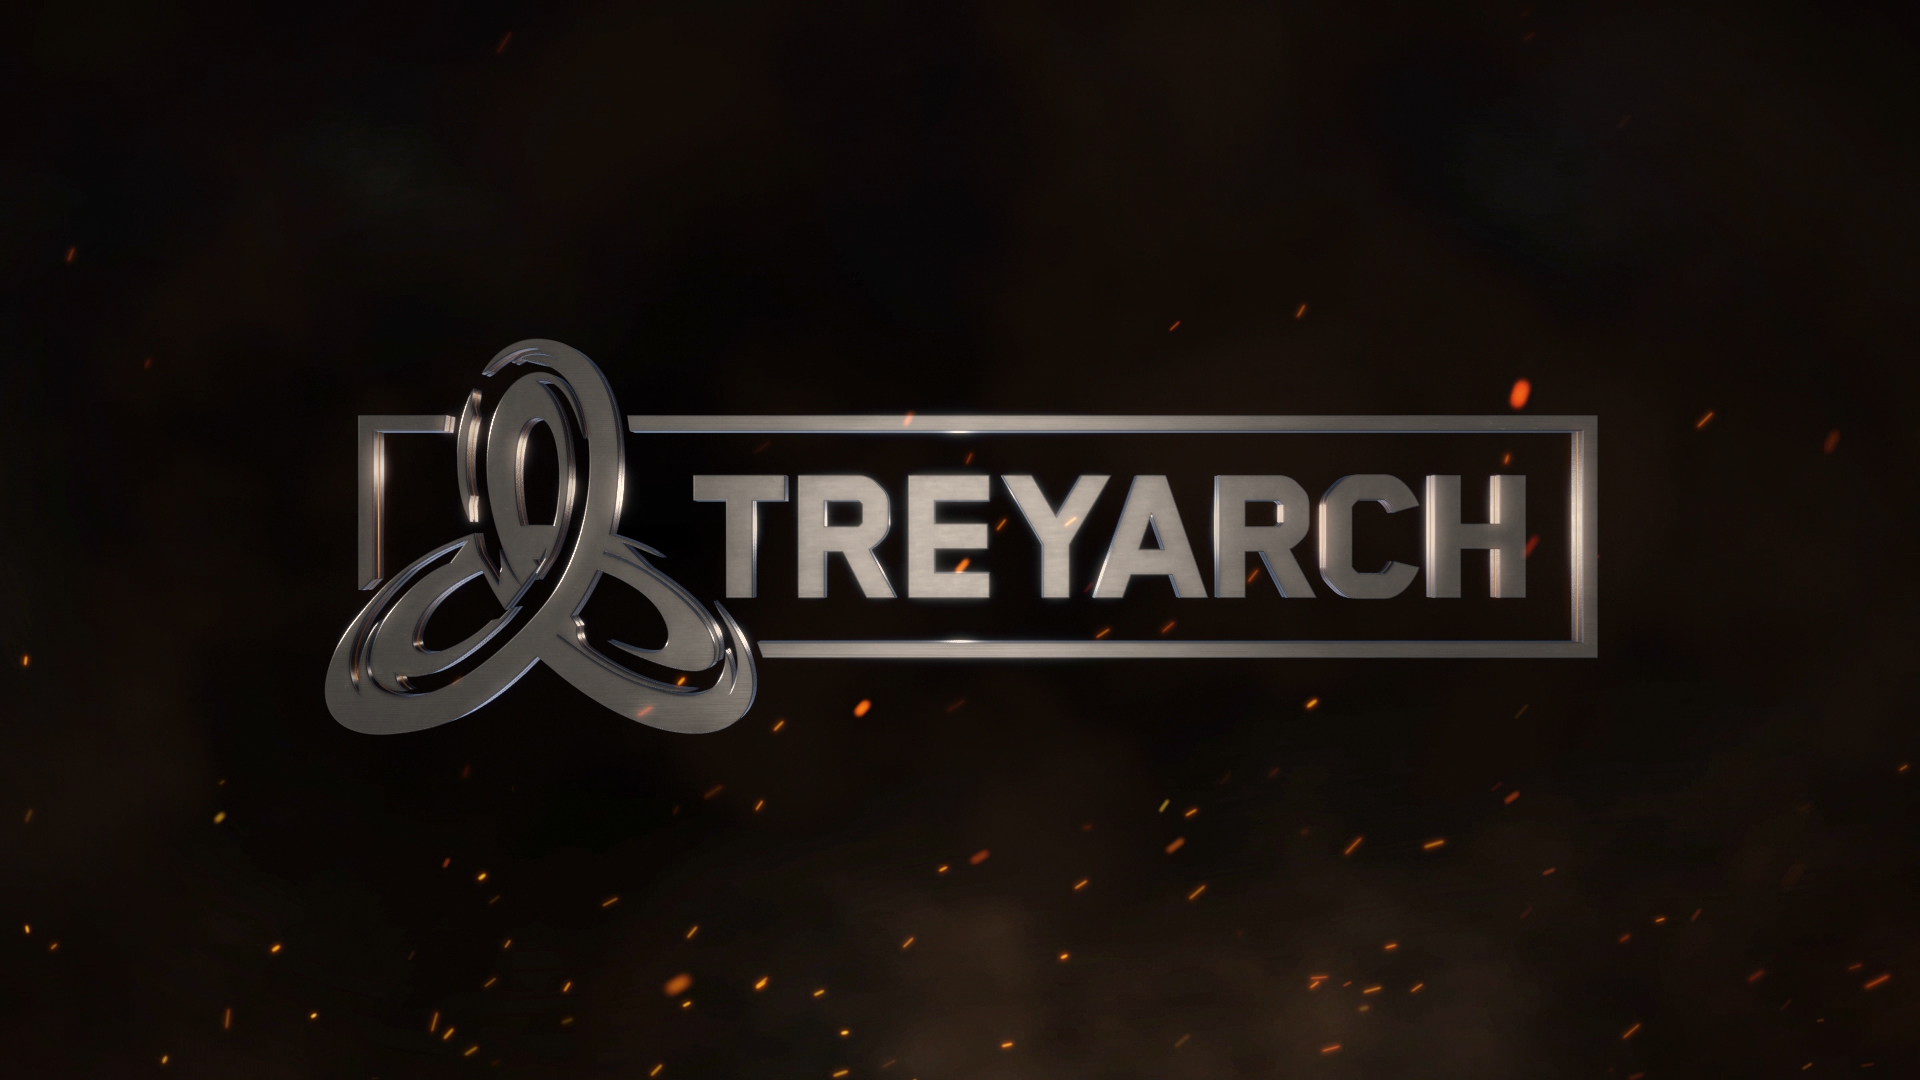 Call Of Duty Black Ops 5 Coming In 2020 From Treyarch